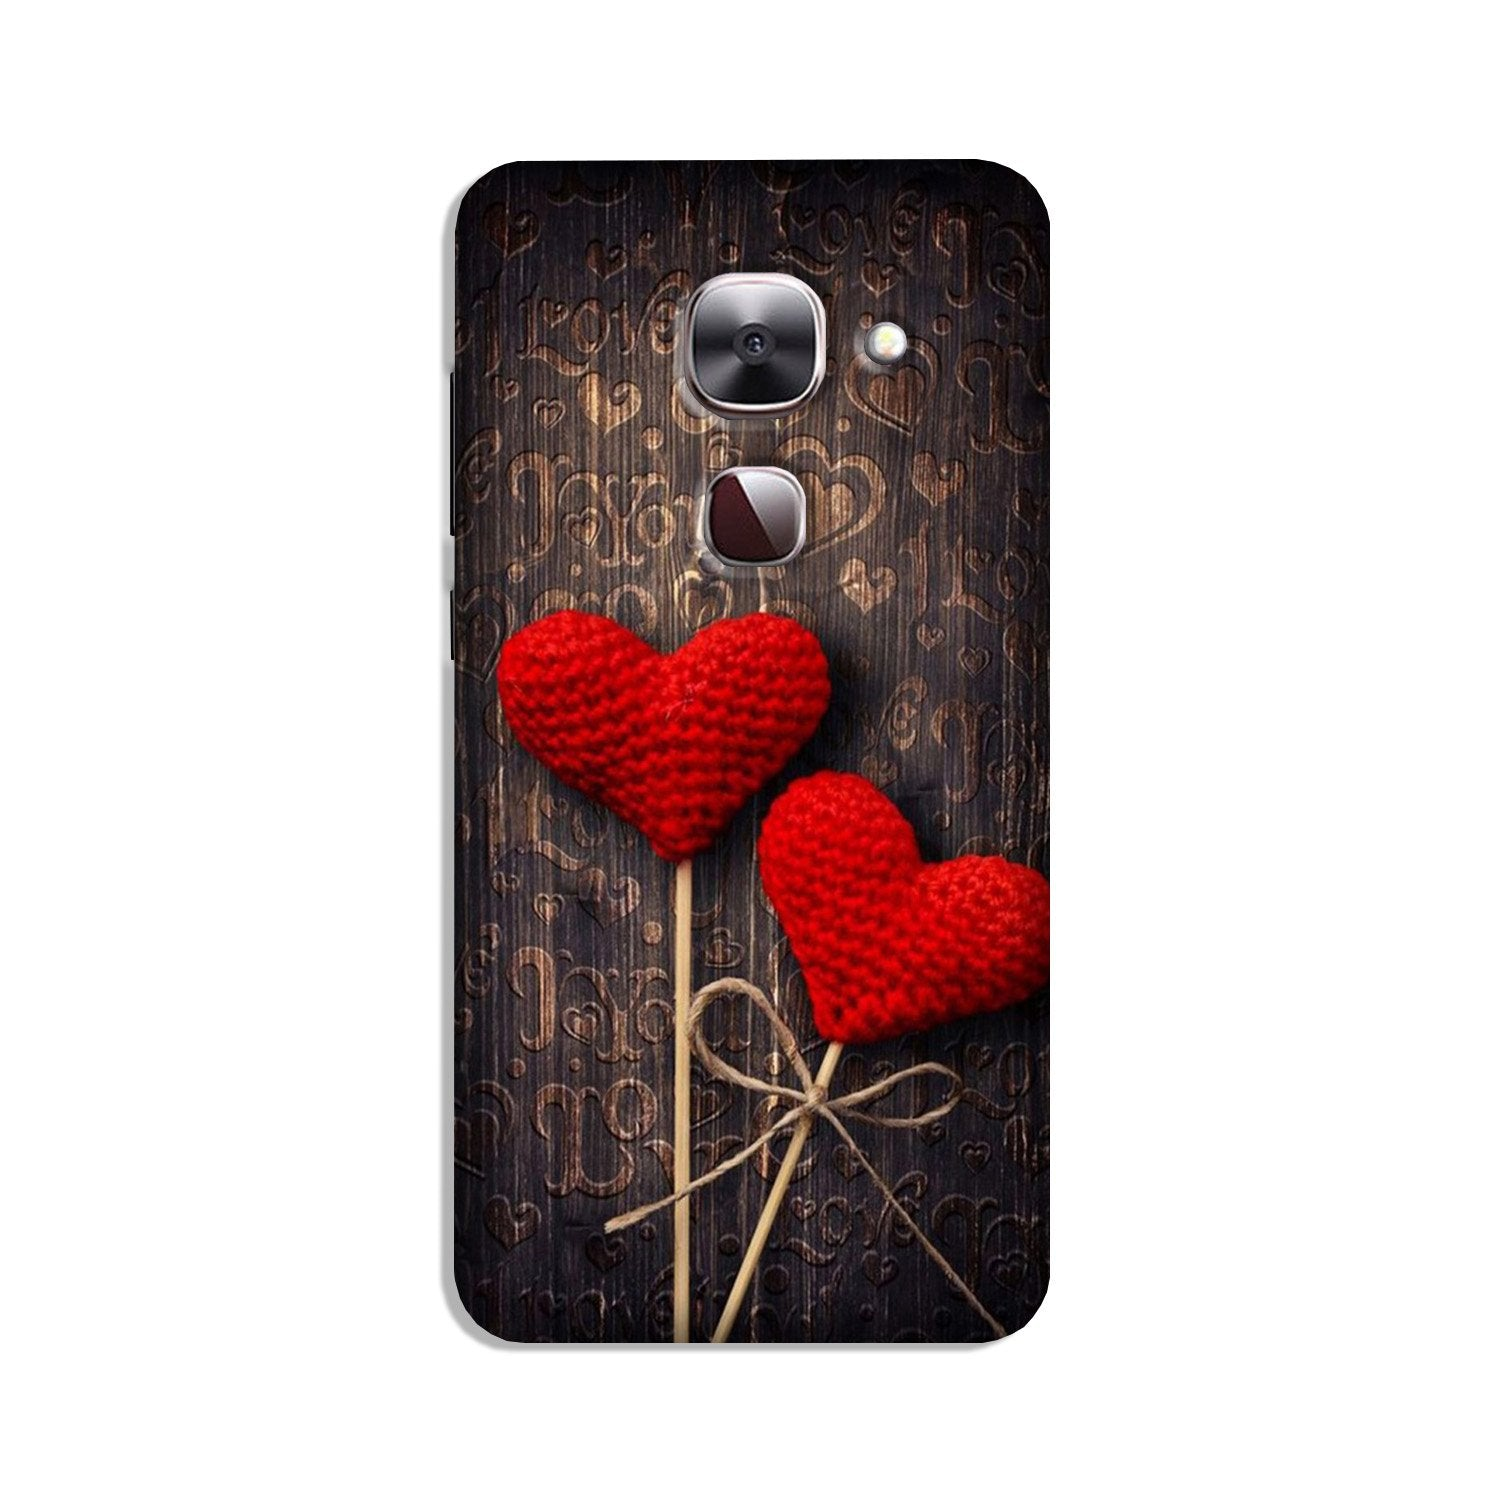 Red Hearts Case for LeEco le 2s